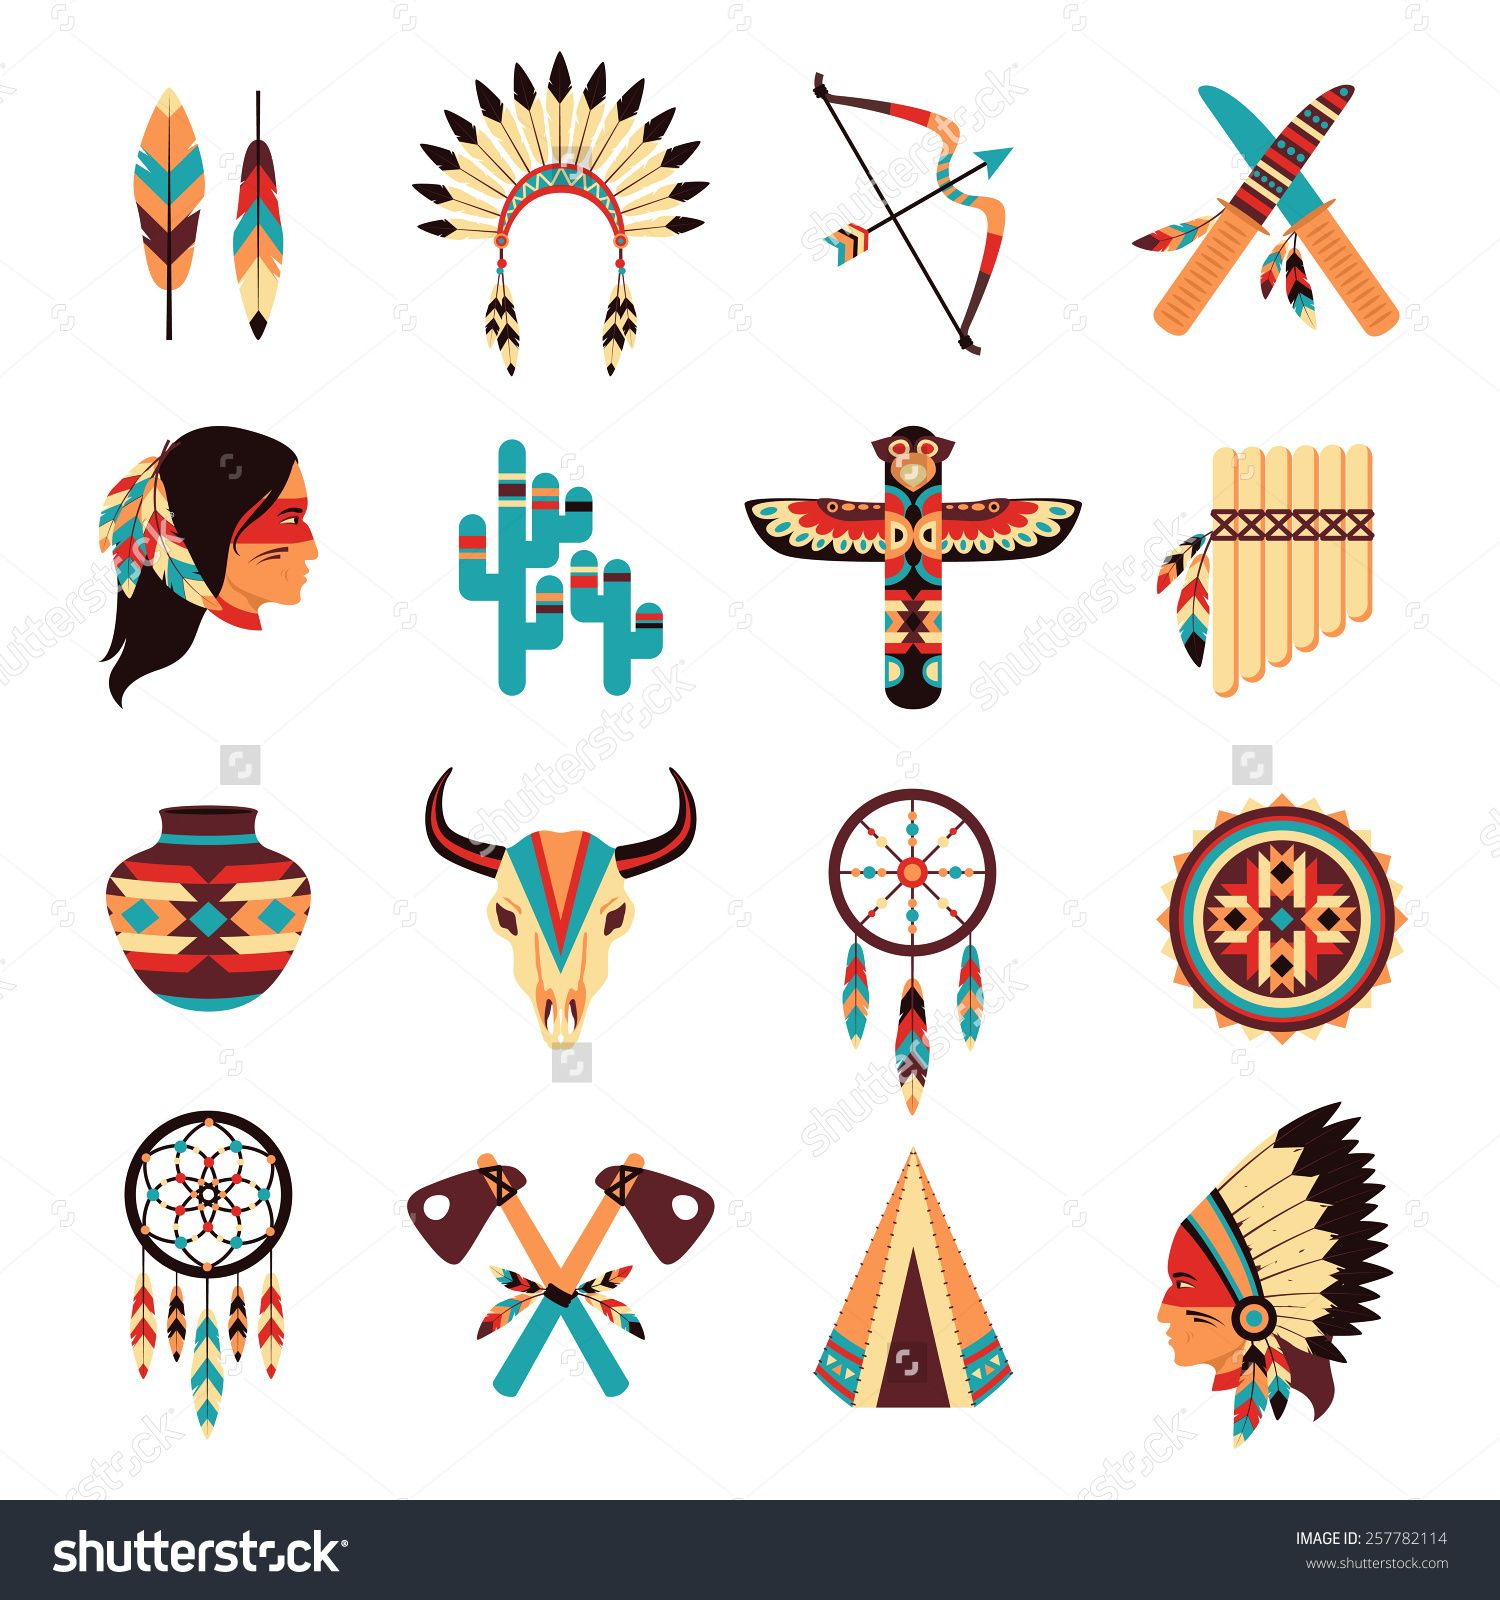 e1707e8af26db Ethnic american idigenous tribal amulets and symbols icons collection with  native feathers headdress abstract isolated vector illustration